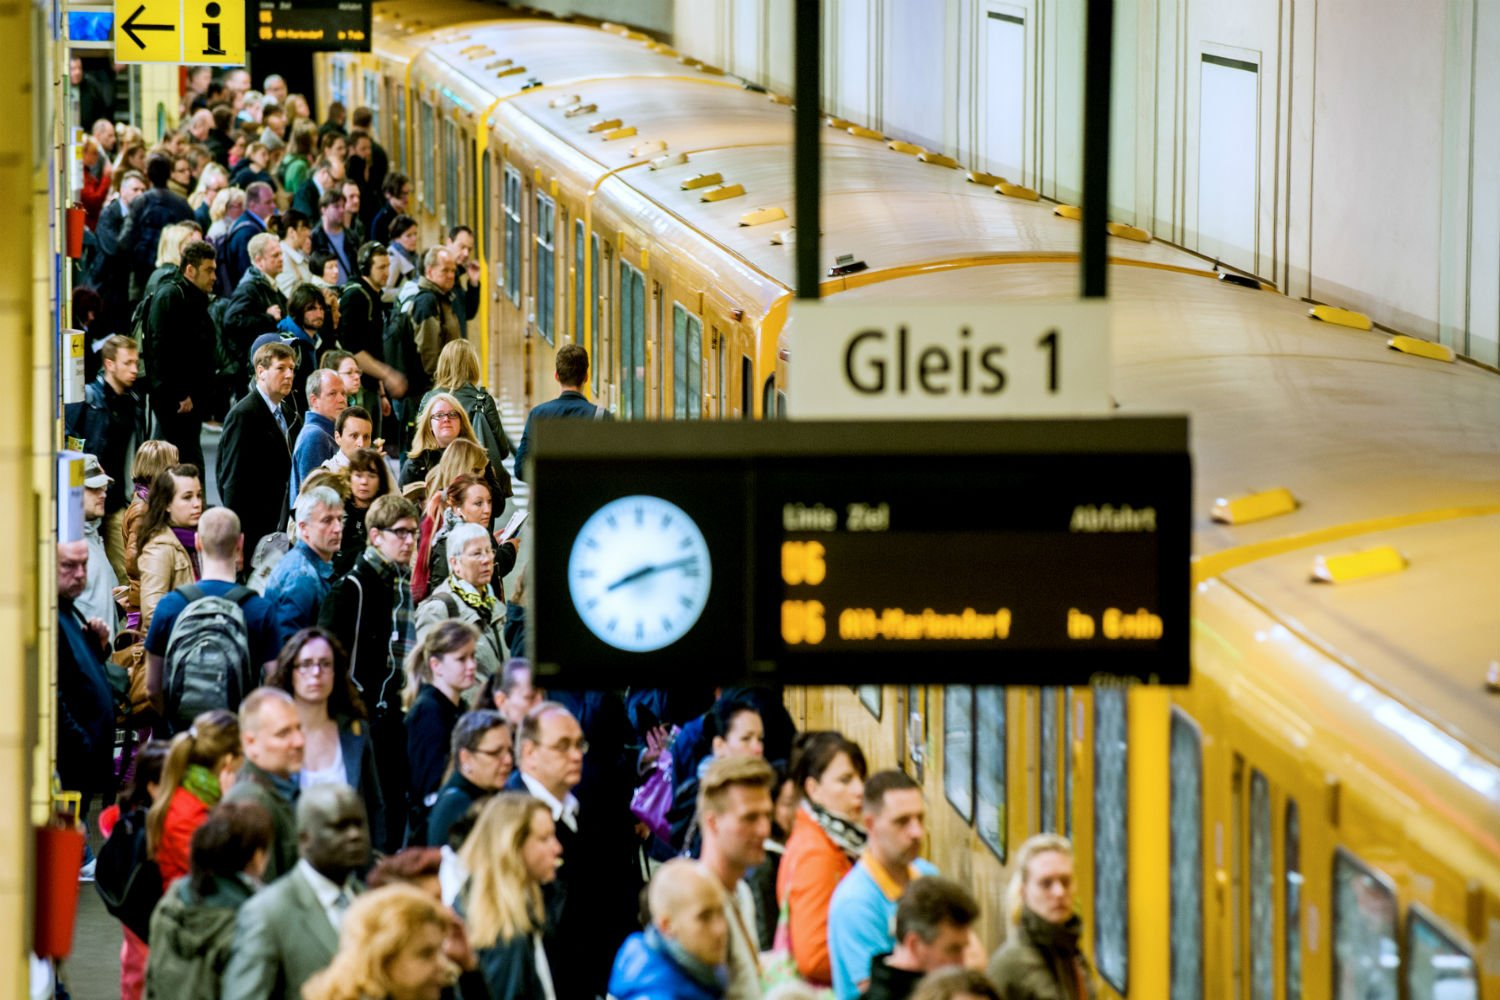 Berliner Schnauze: The 'rude' German attitude foreigners could learn from